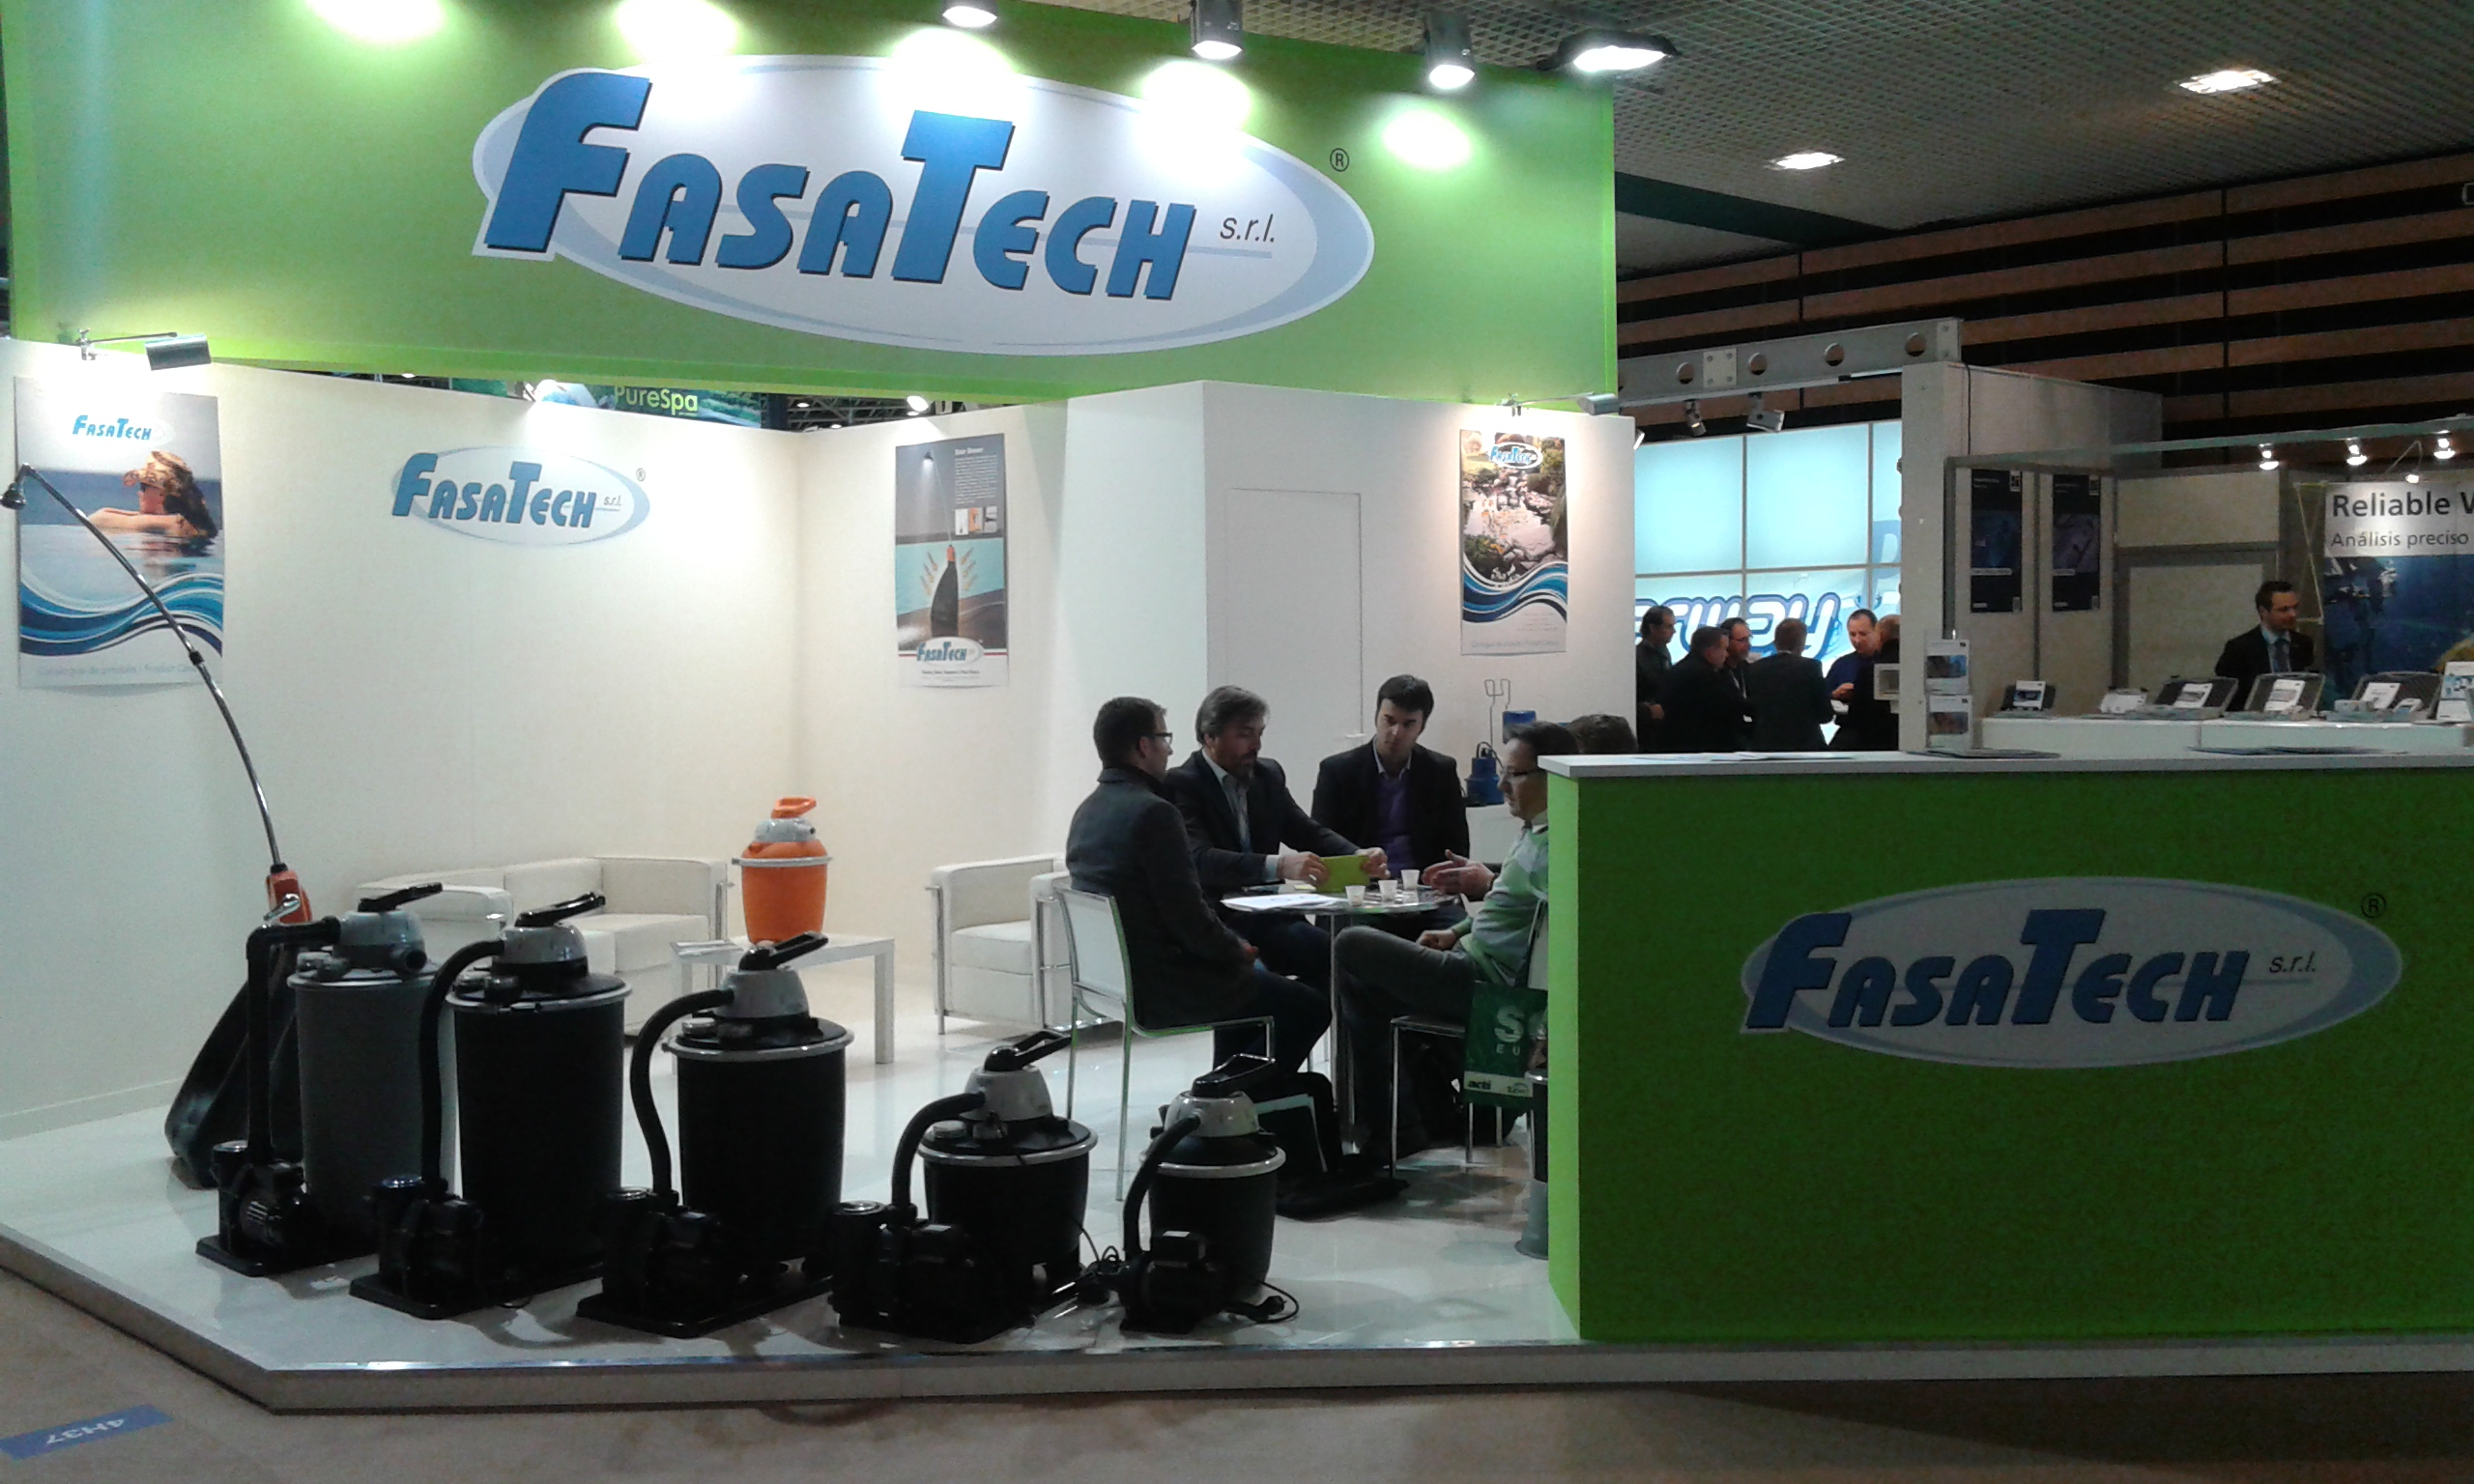 fasatech stand at piscine global 2014